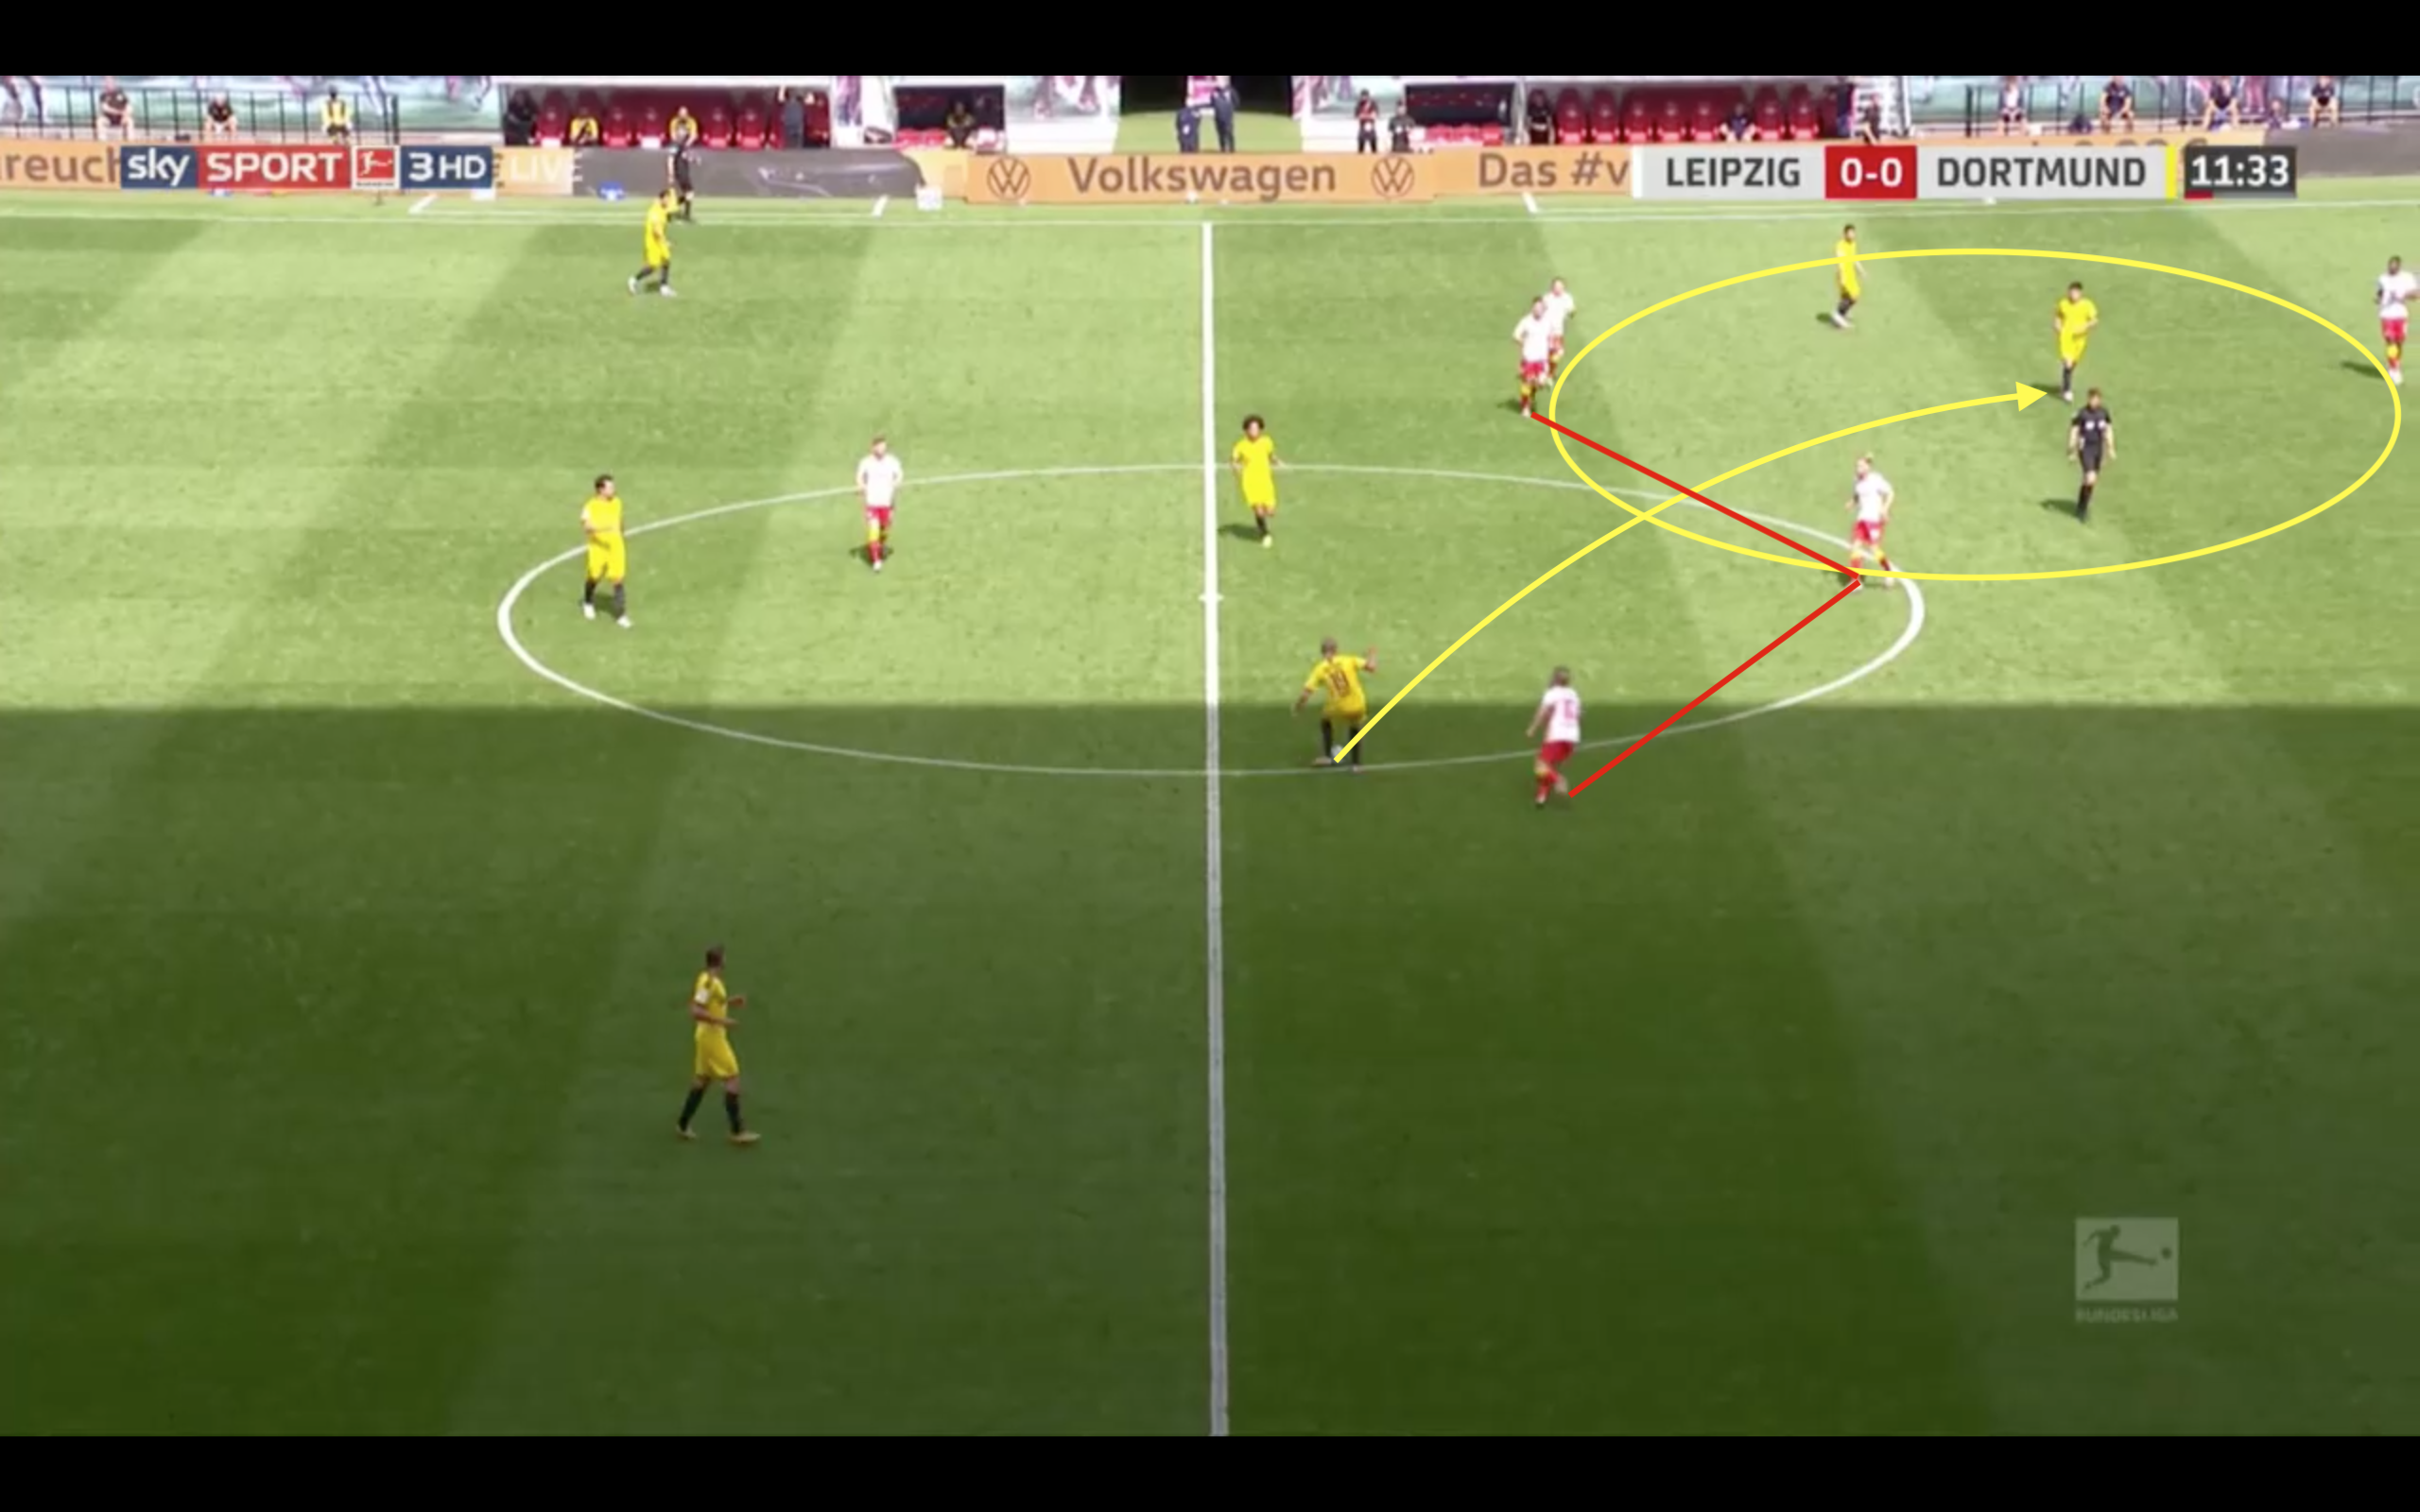 Bundesliga 2019/20: RB Leipzig vs Borussia Dortmund - tactical analysis tactics